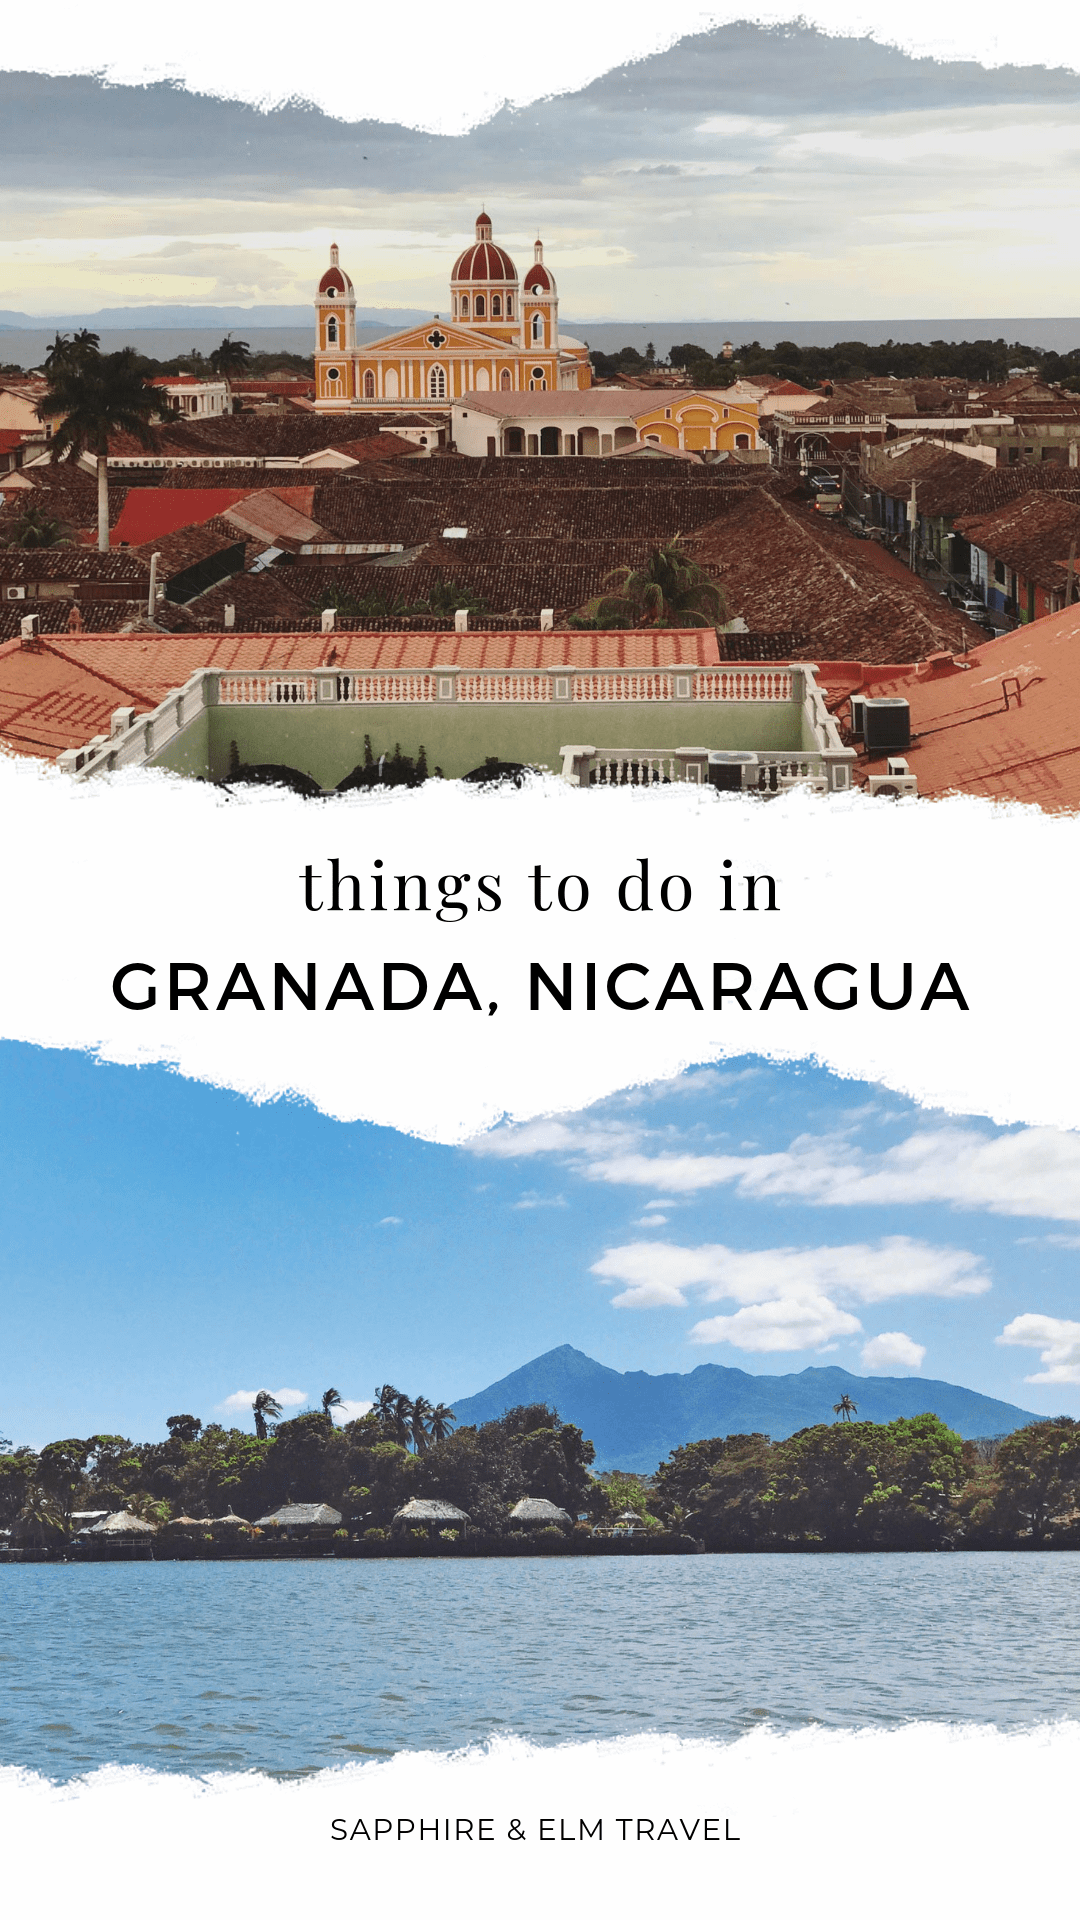 Things to do in Granada Nicaragua | Sapphire & Elm Travel